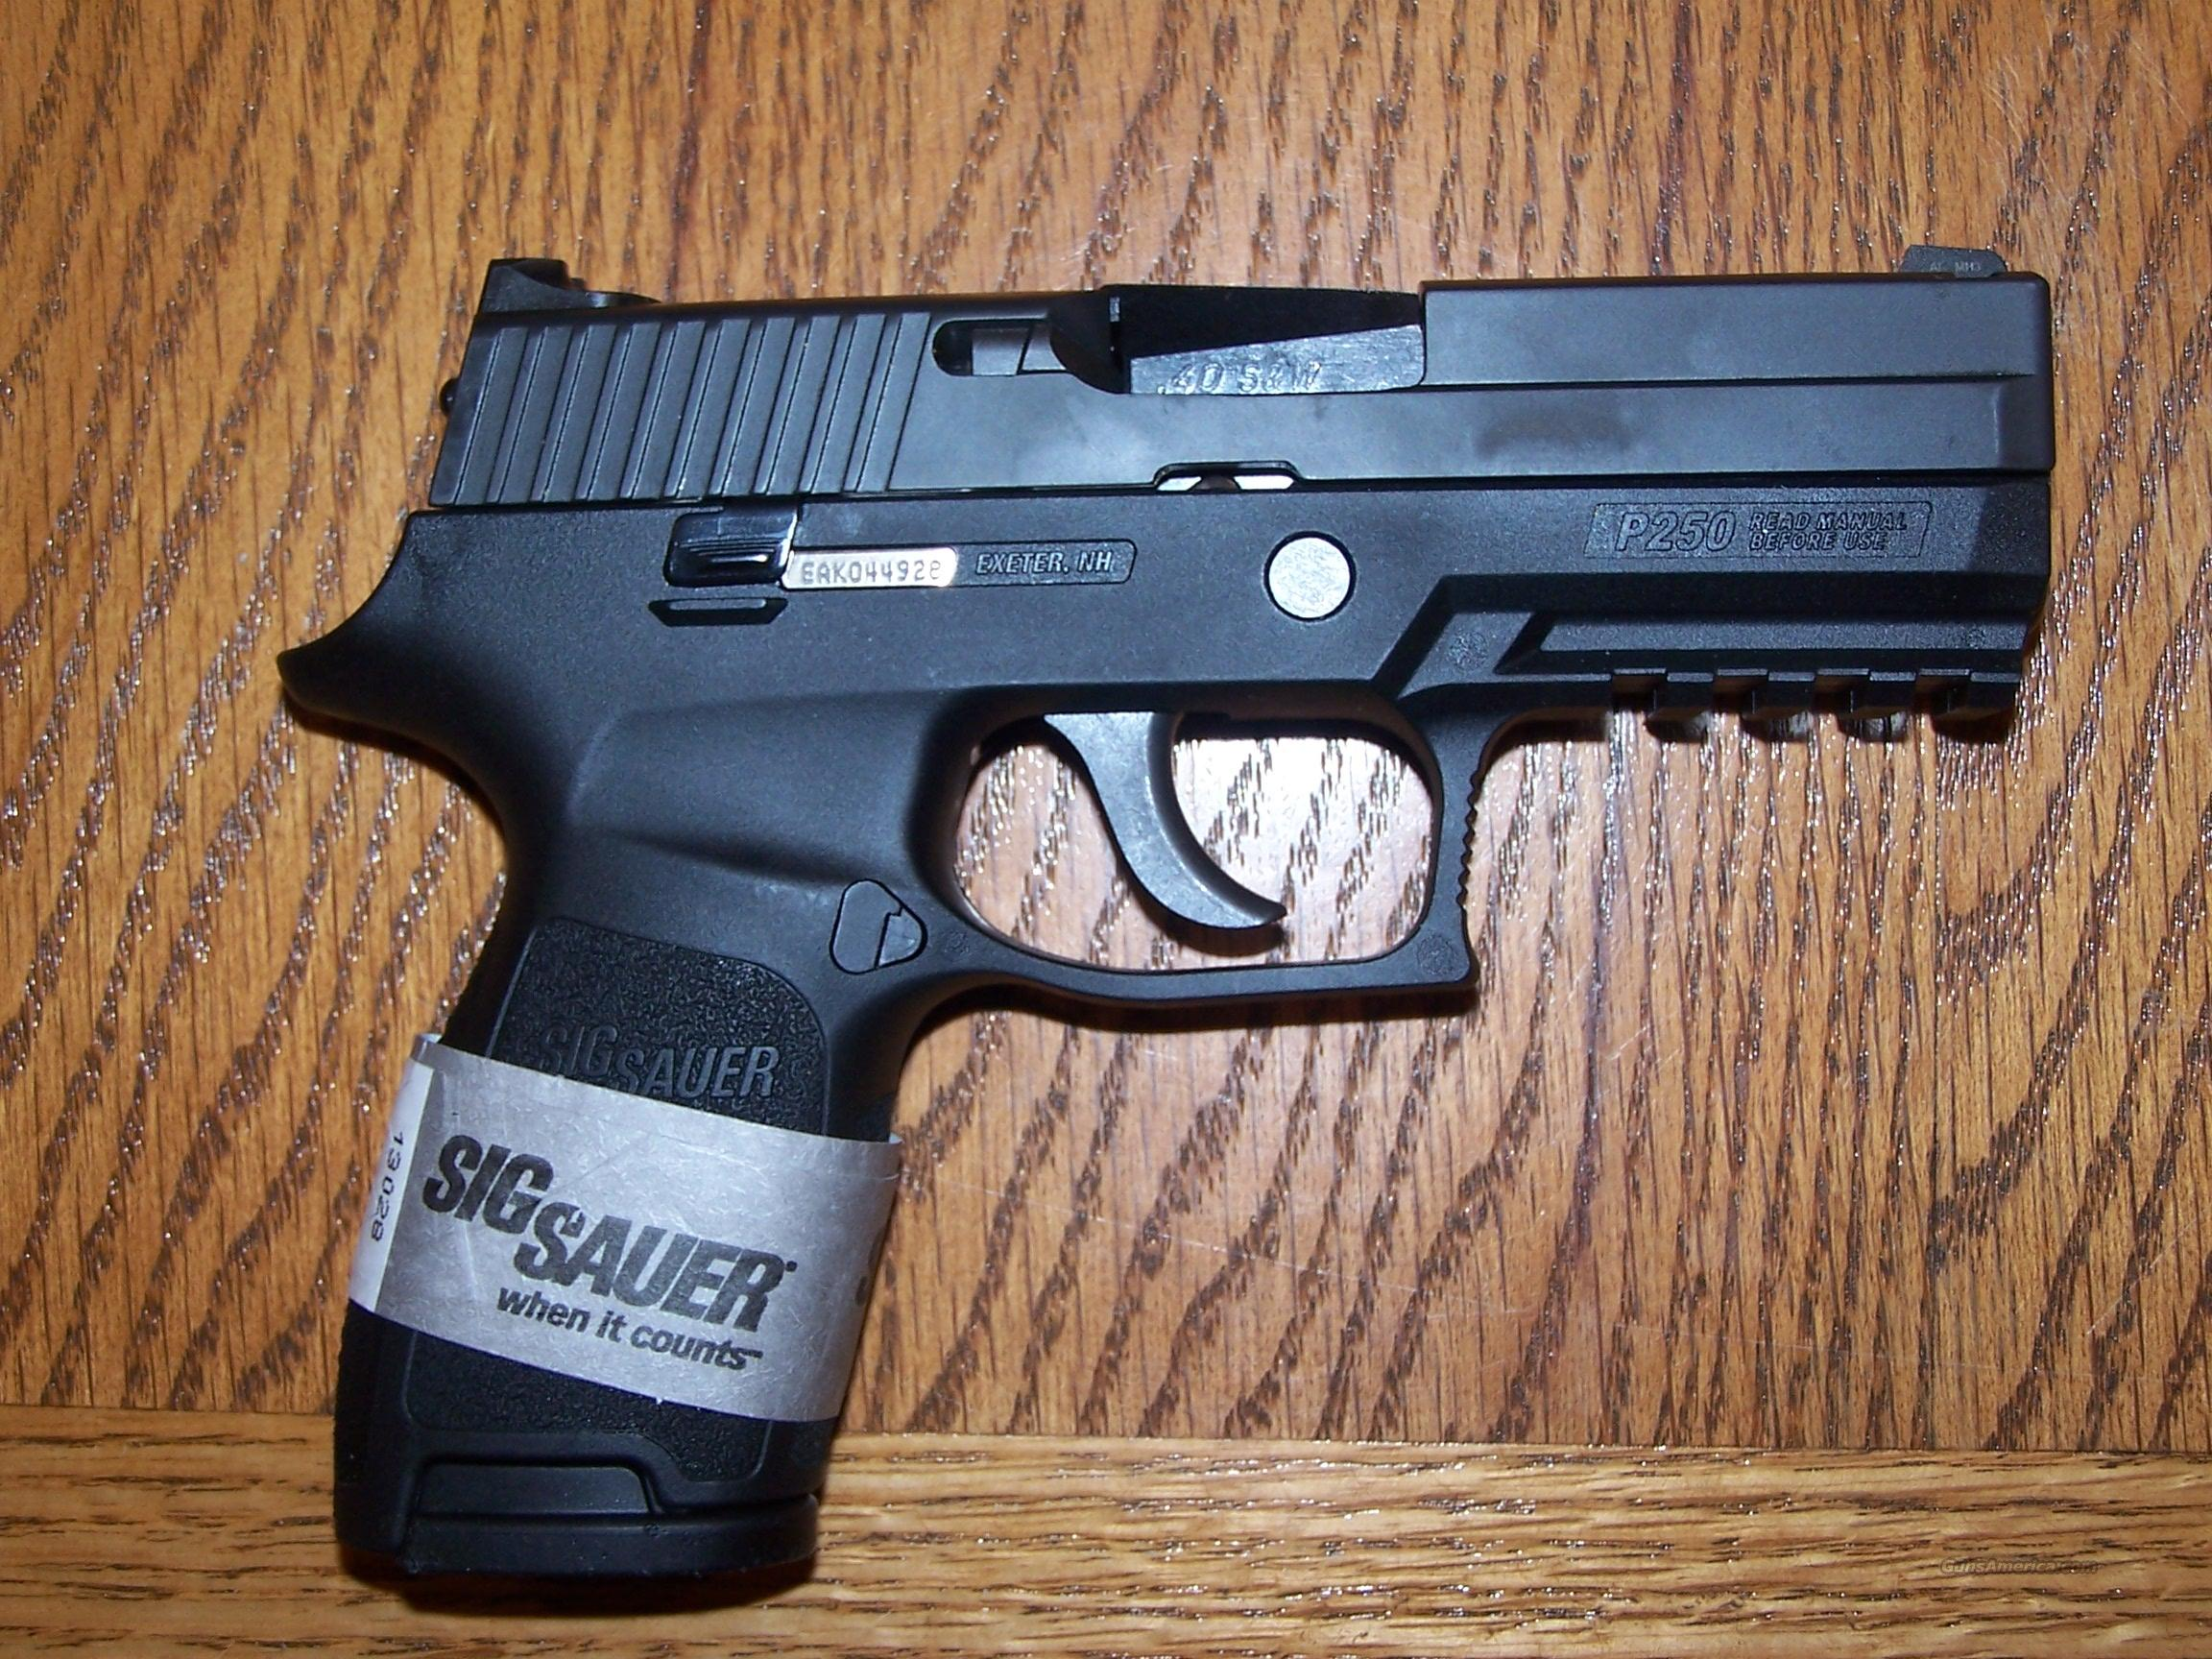 SIG P250C. 40SW. INCLUDES SIG .357 BARREL AND 3-13 ROUND MAGS  Guns > Pistols > Sig - Sauer/Sigarms Pistols > P250